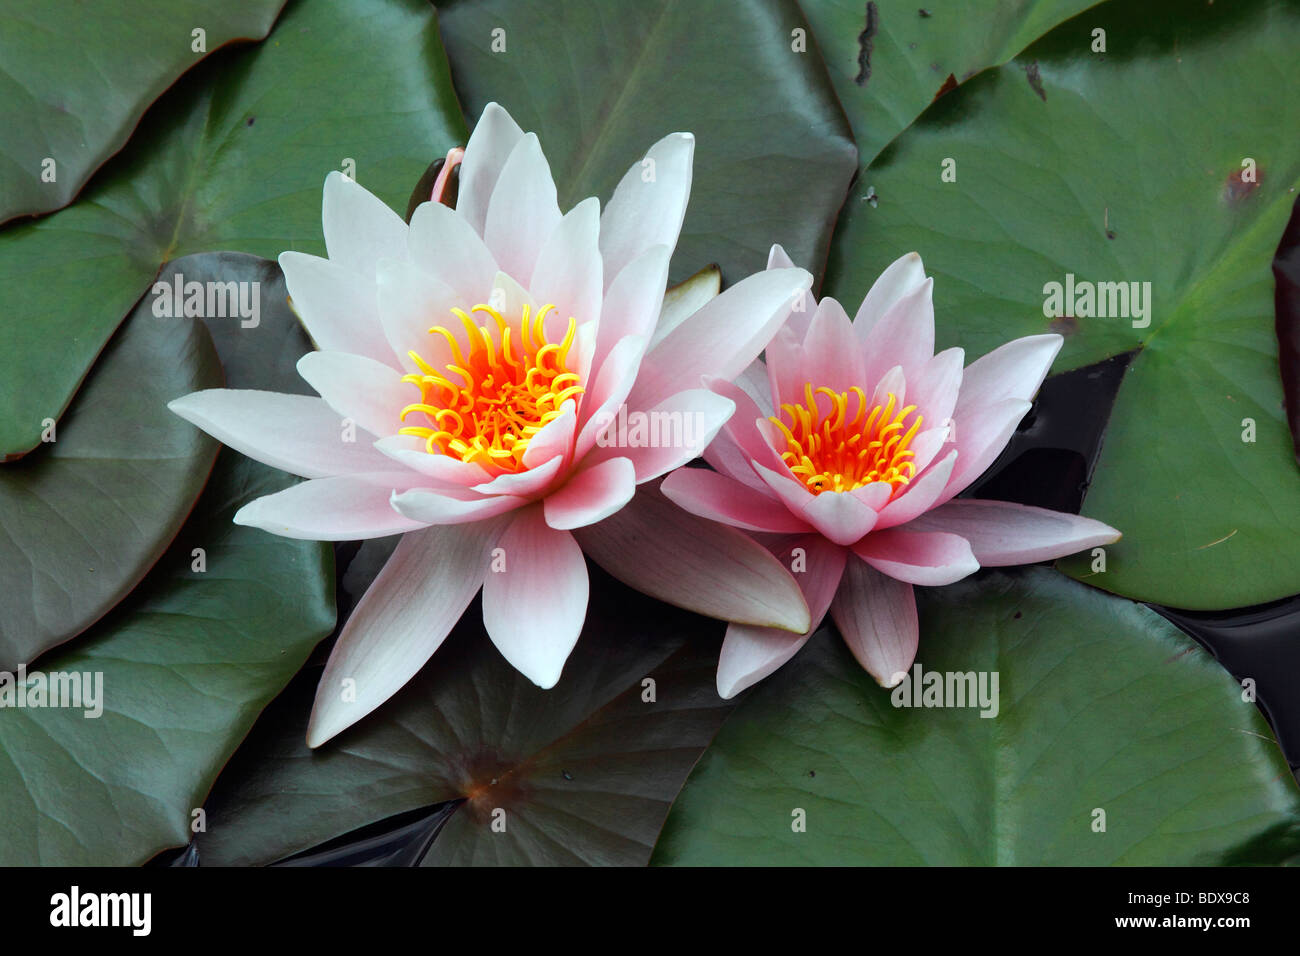 Flowering Water lilies (Nymphaea cultivar) - Stock Image